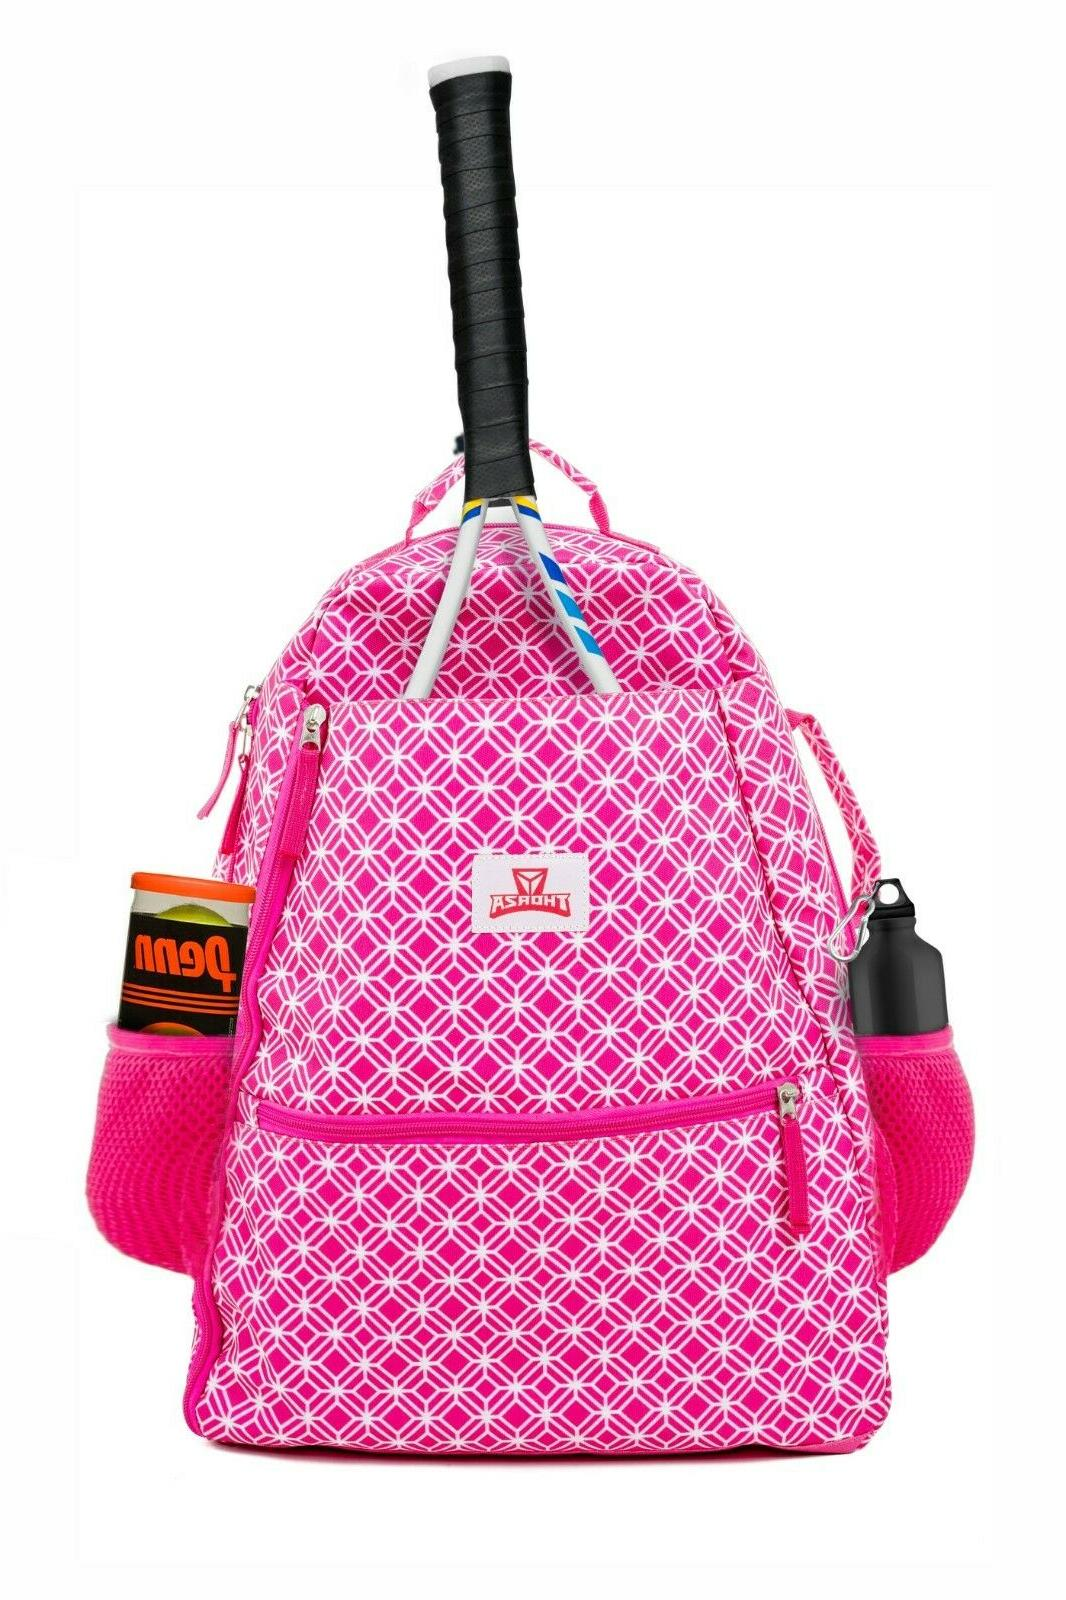 tennis racket backpack for women stores 2